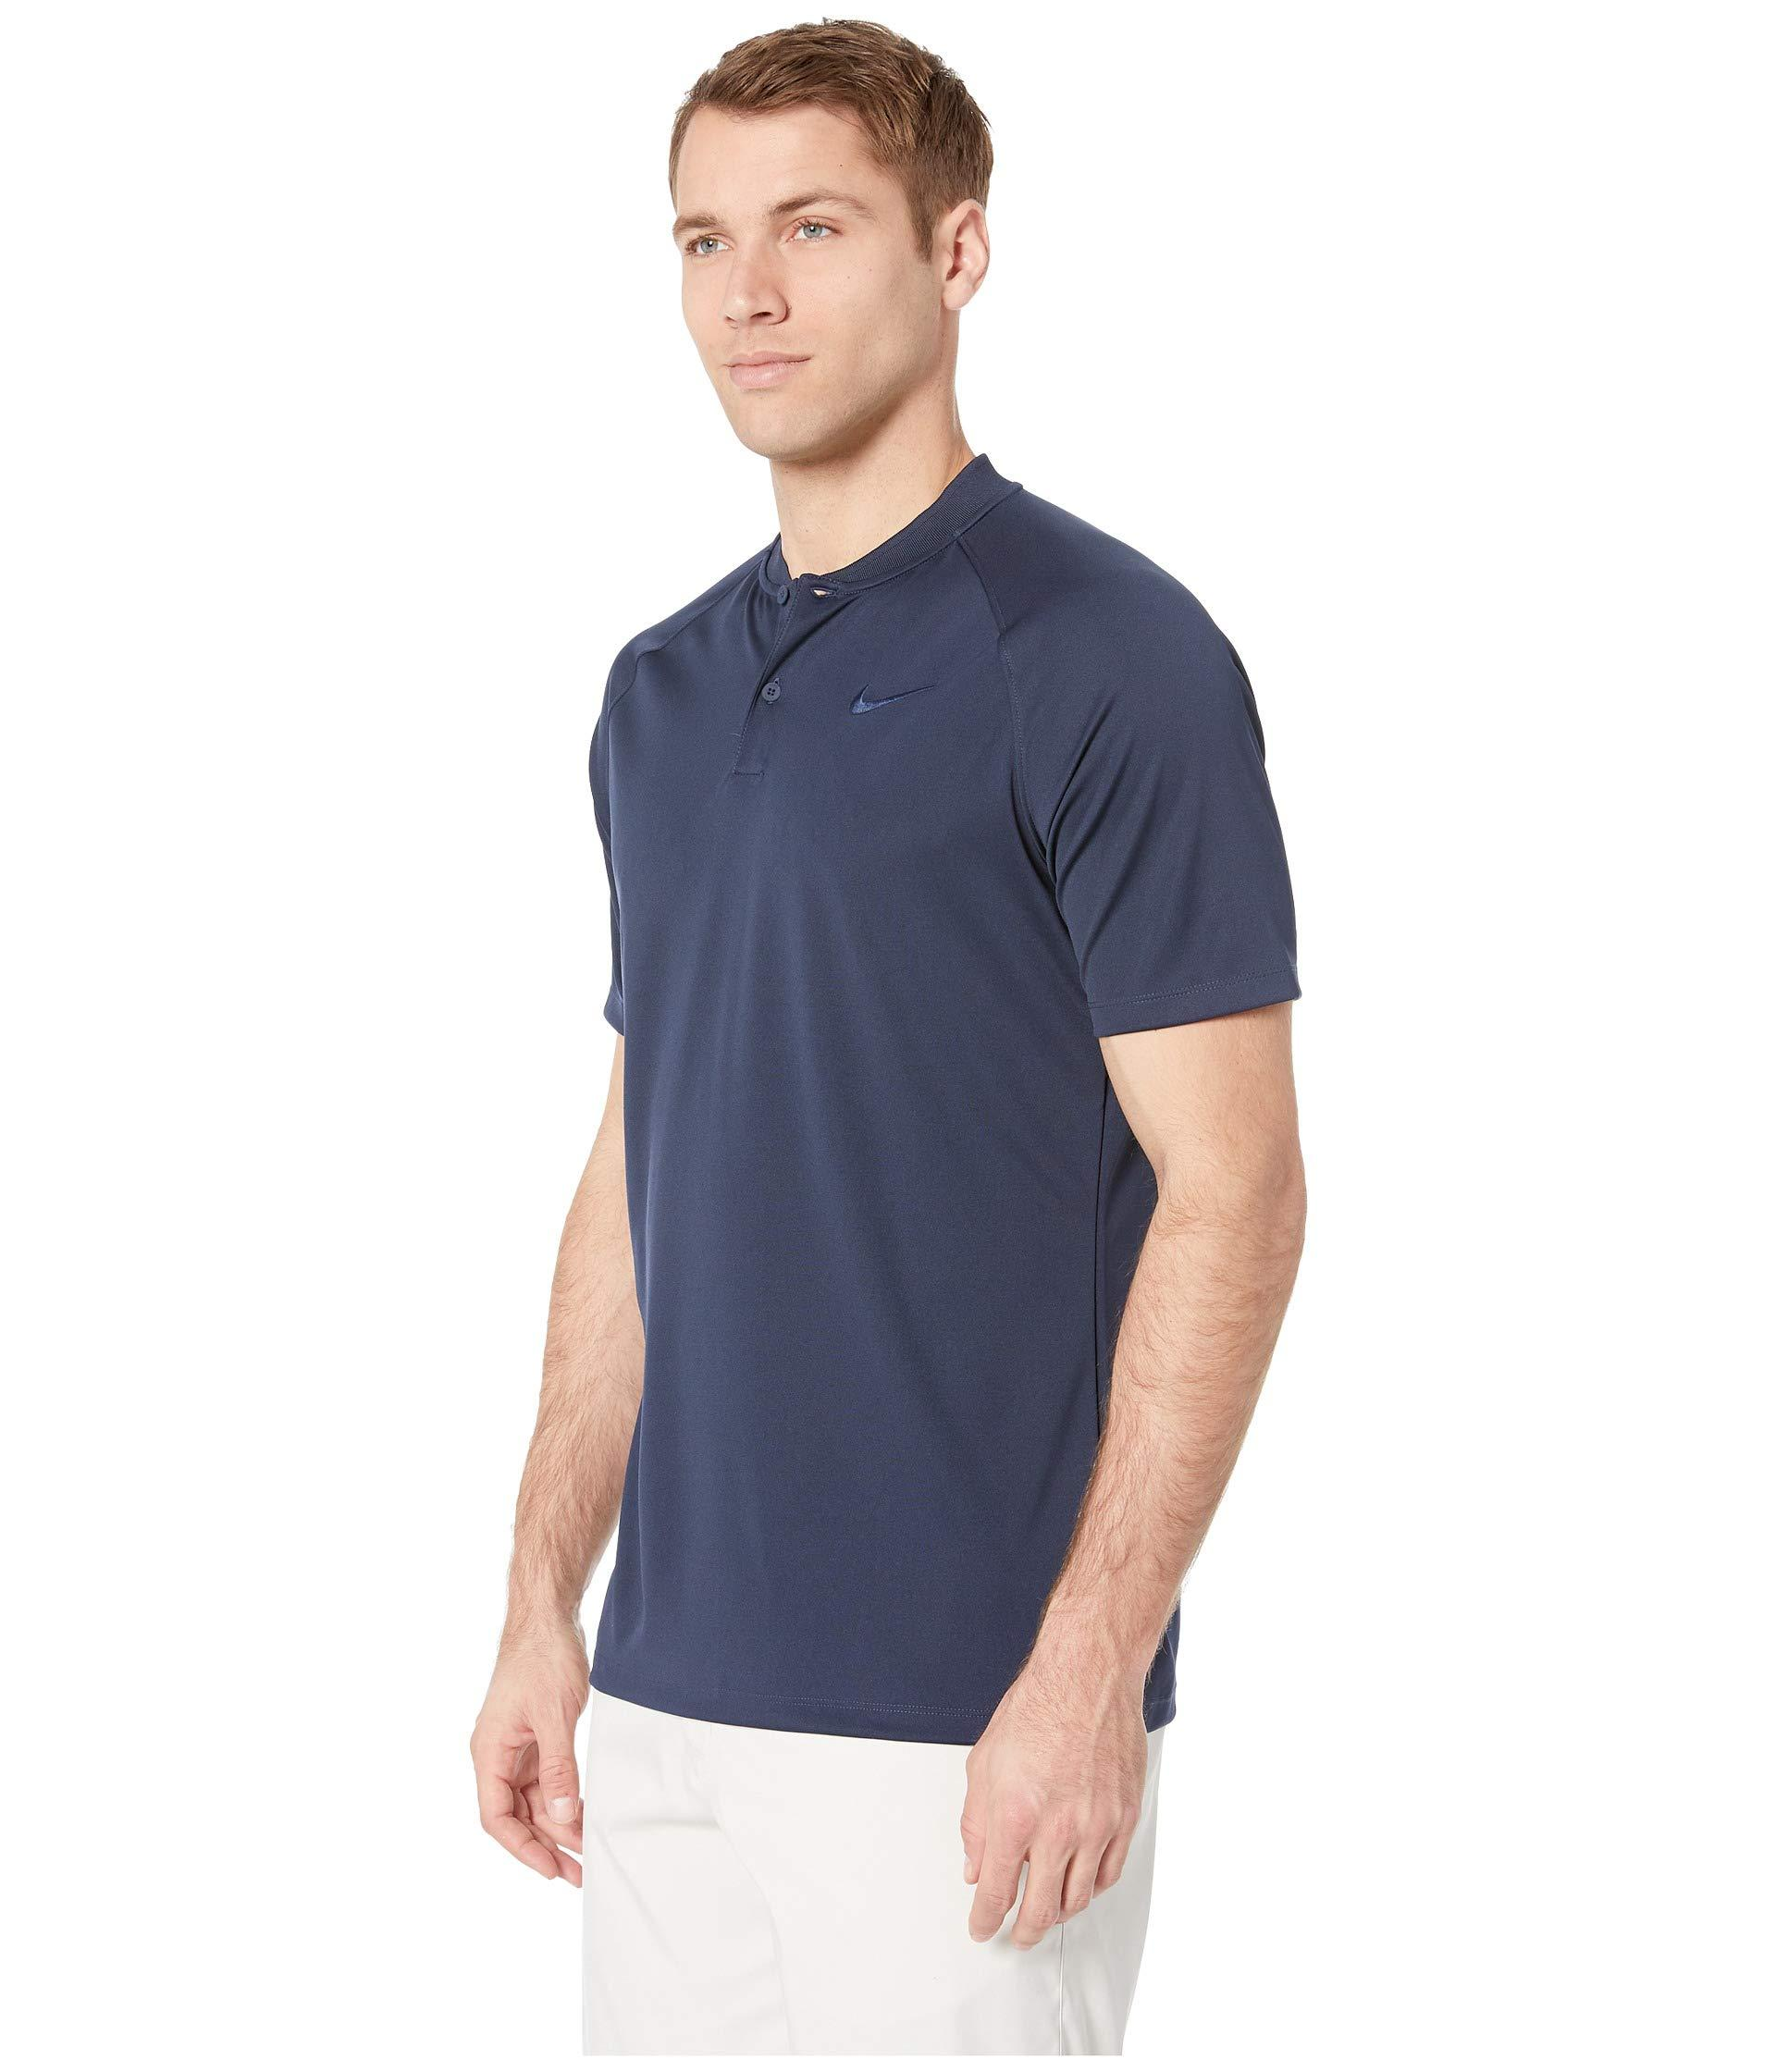 9f496d8f Lyst - Nike Victory Blade Polo (college Navy/college Navy/white) Men's  Clothing in Blue for Men